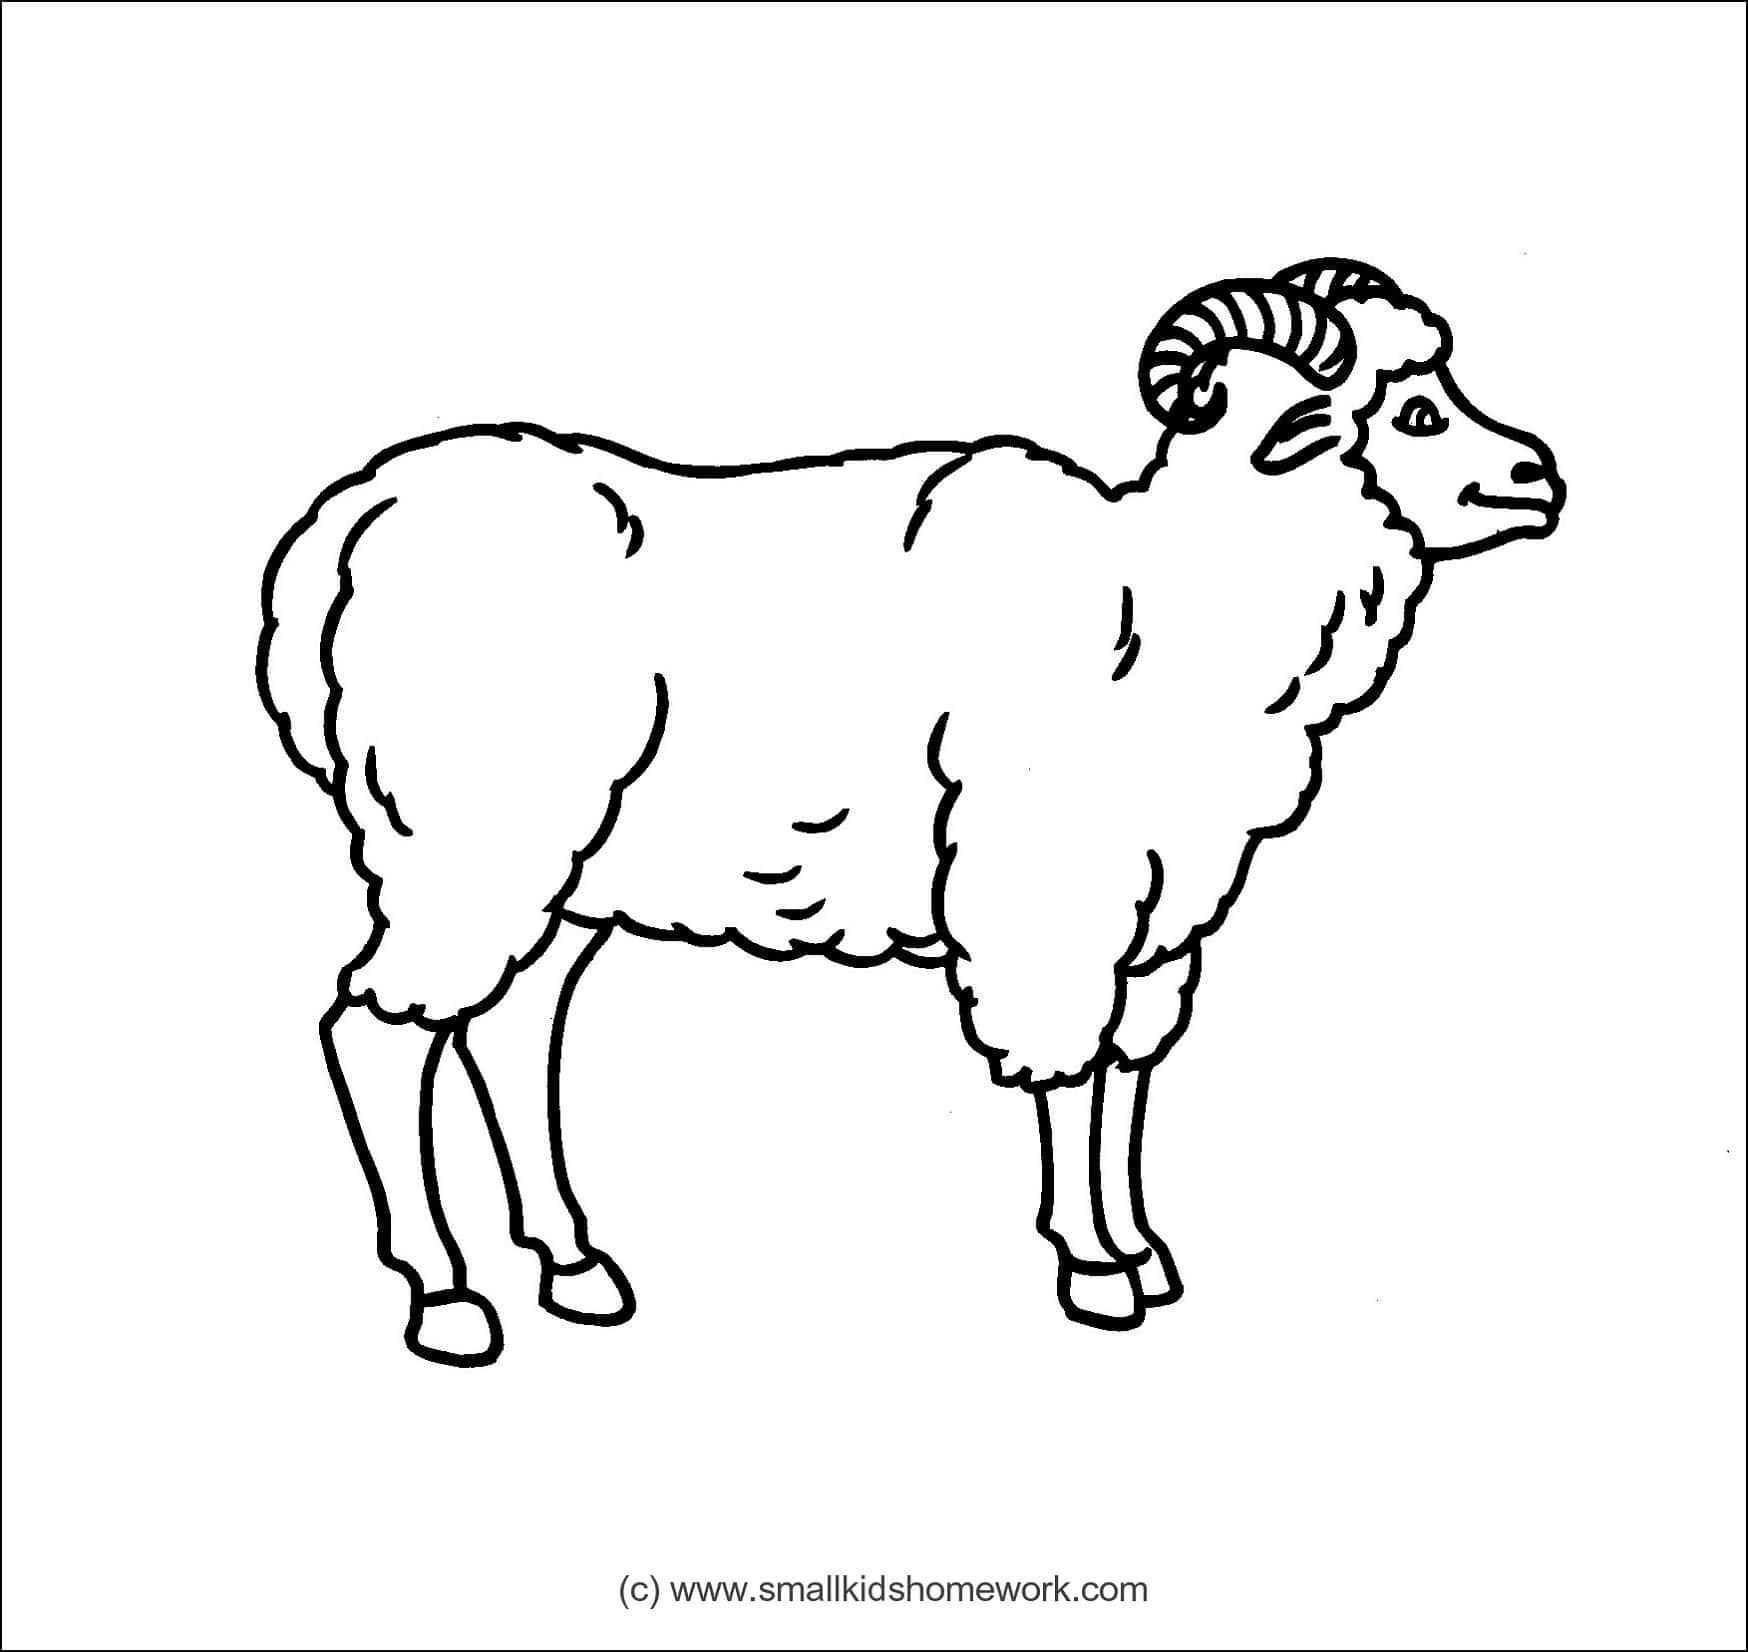 Sheep Outline Picture